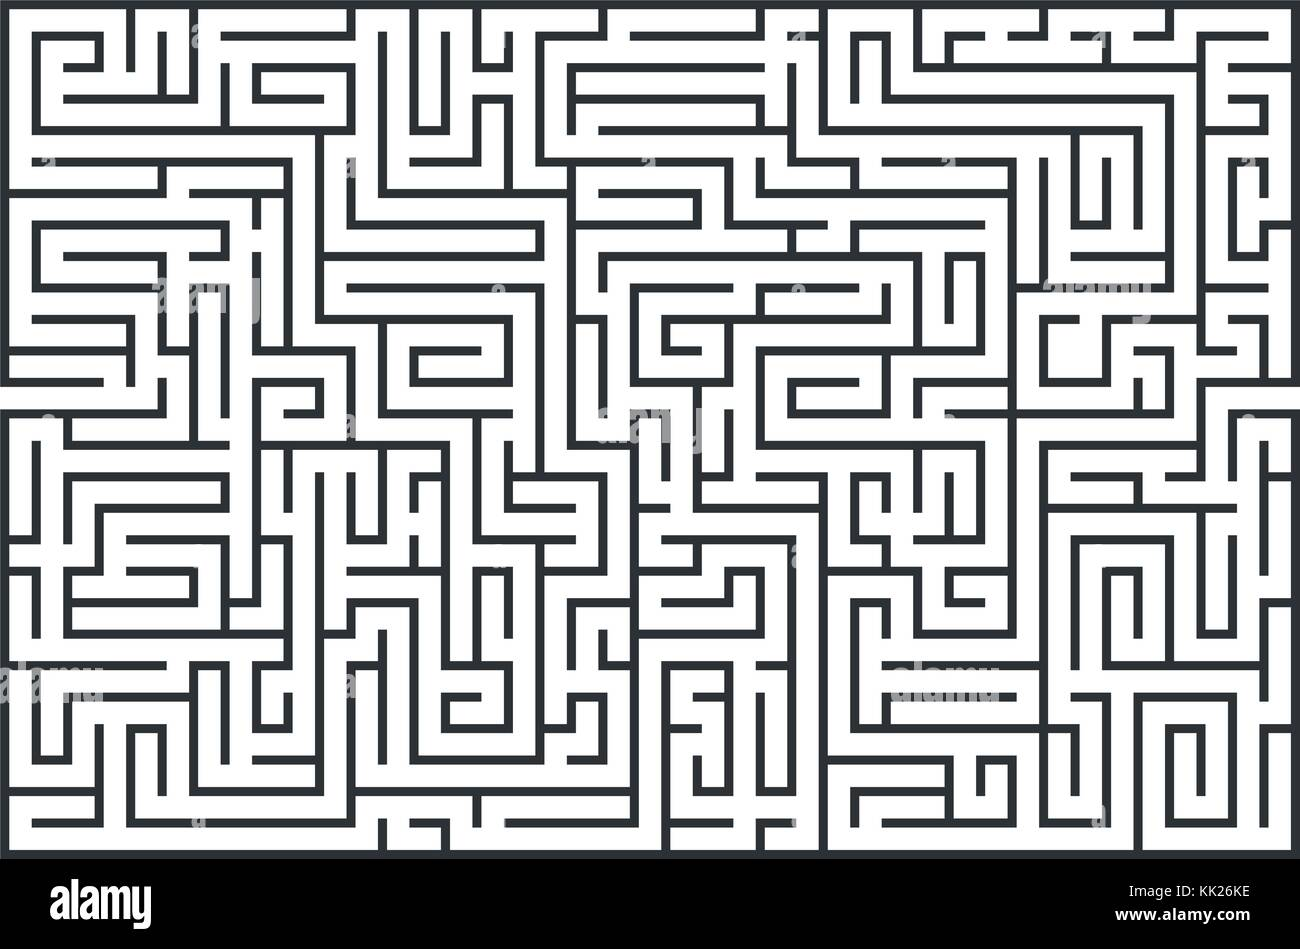 illustration of maze, labrinth. Isolated on white background. Medium difficulty. - Stock Vector